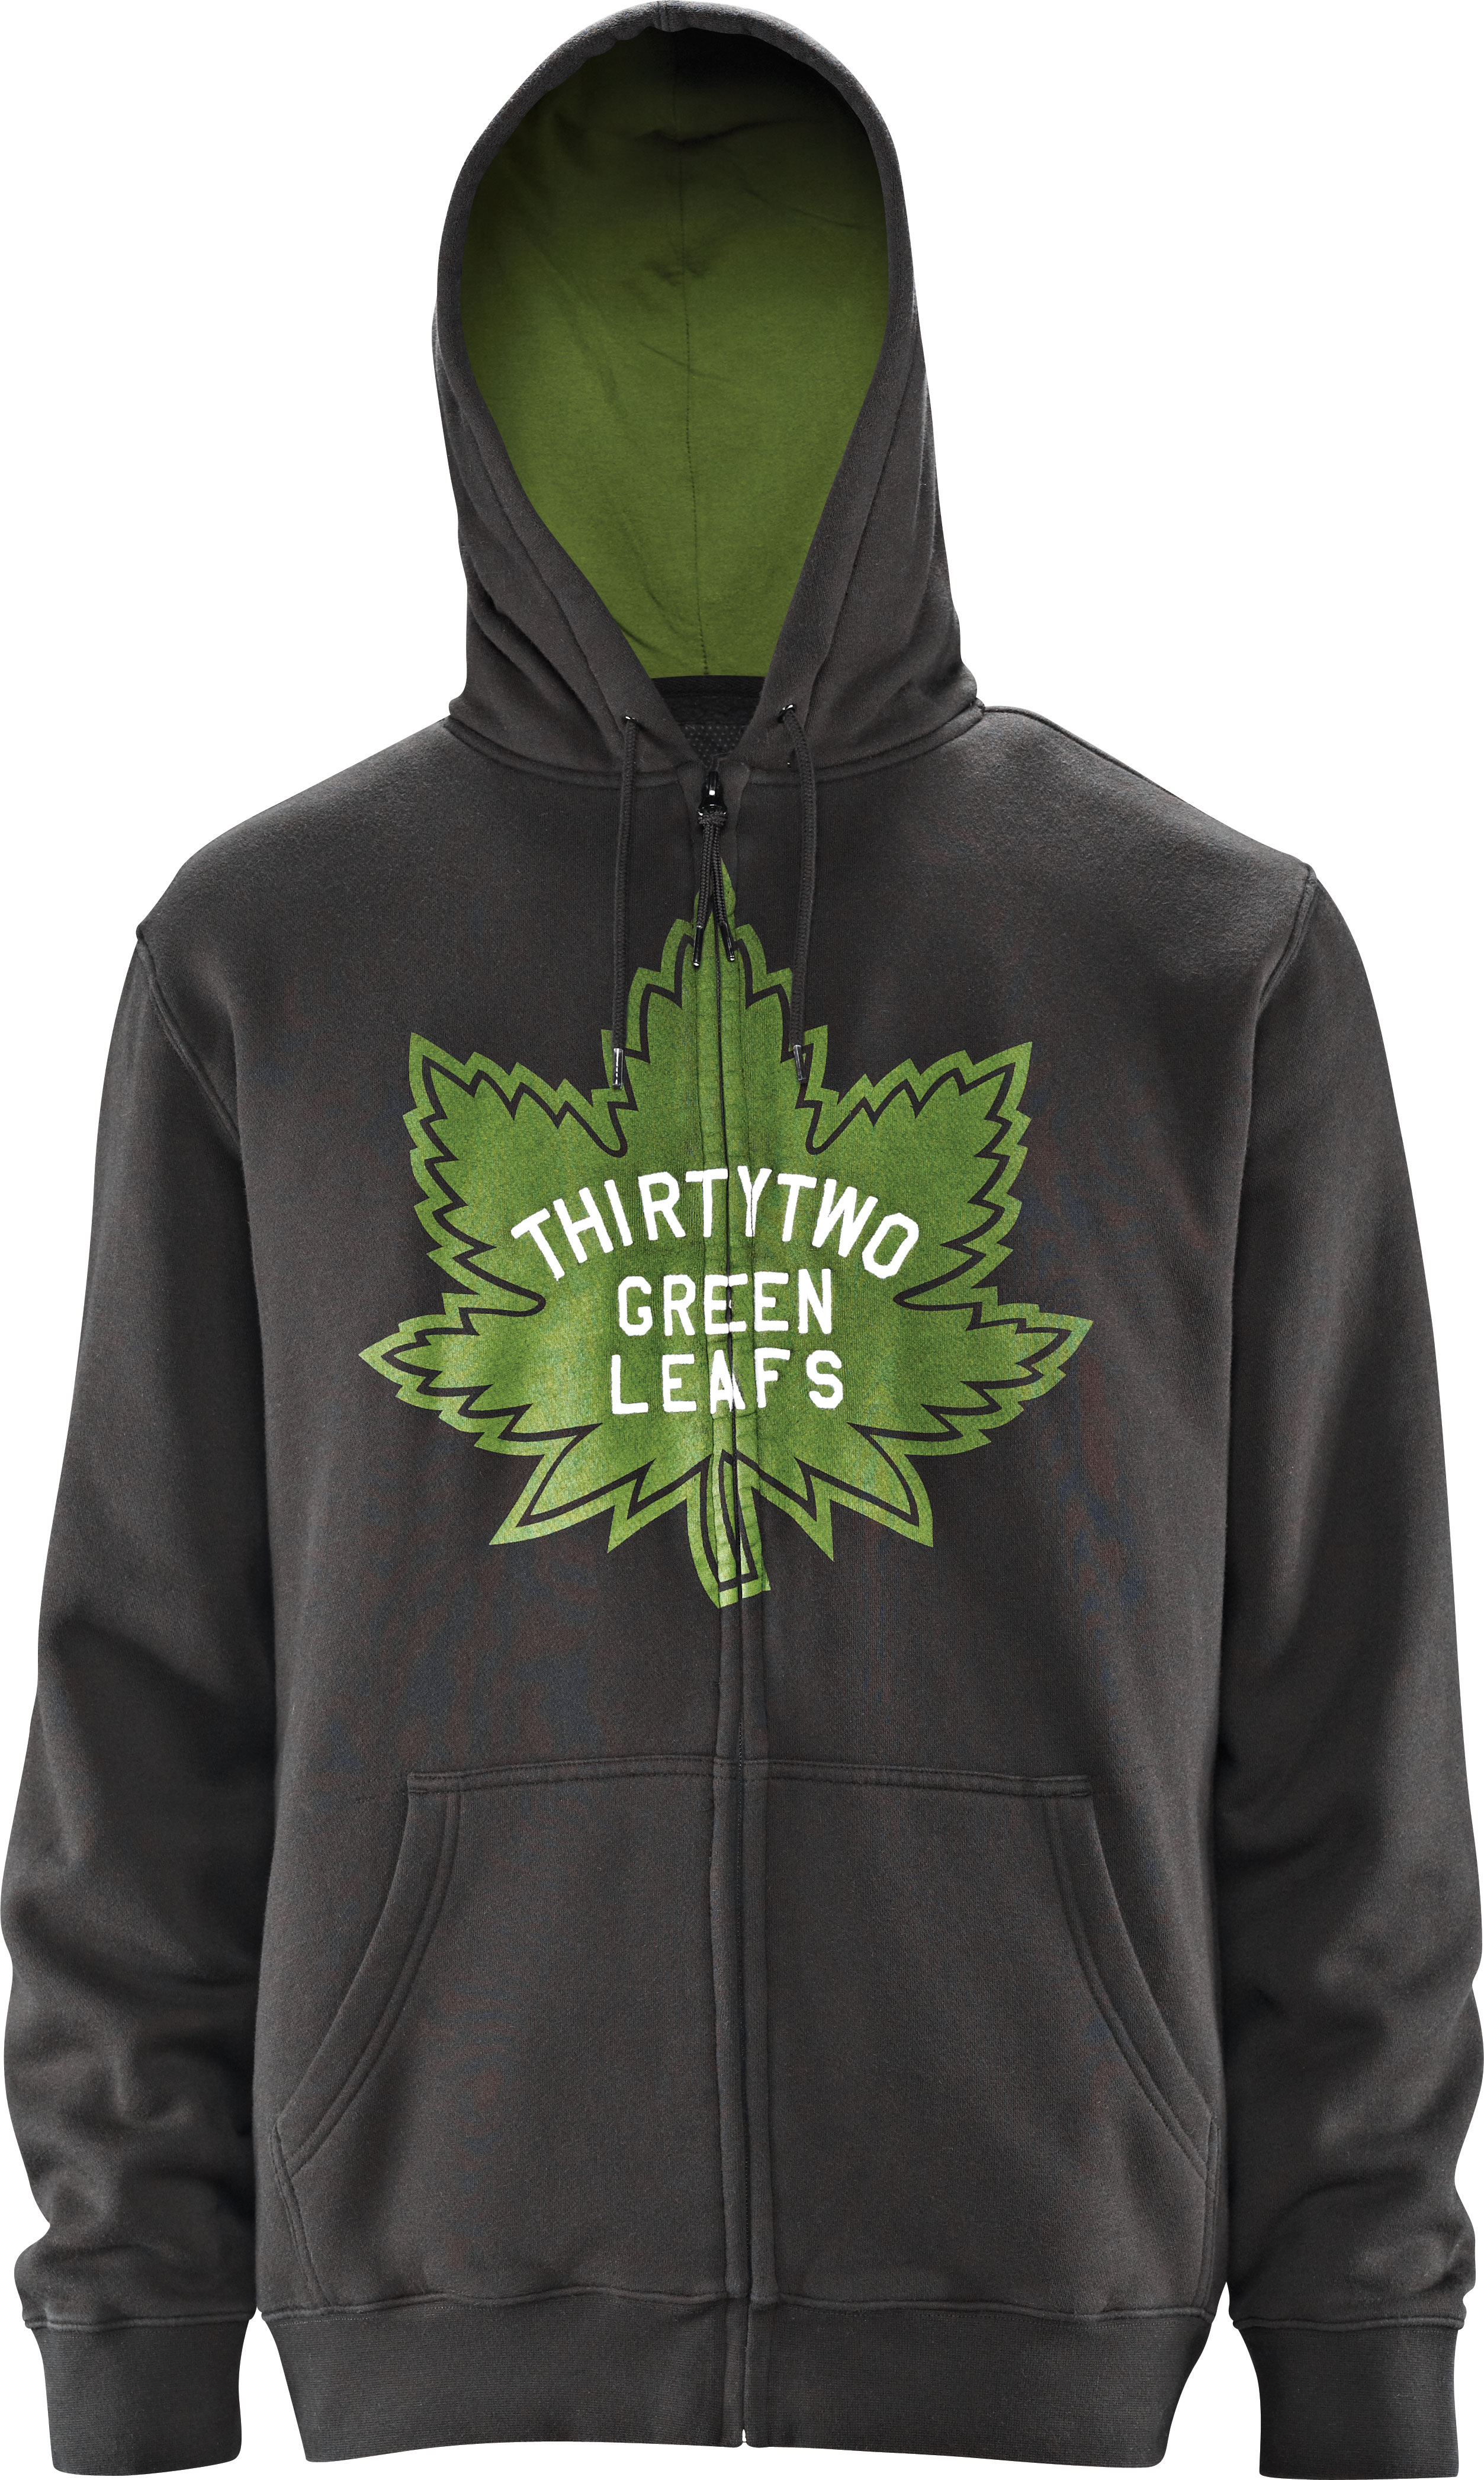 Zip hoodie with STI REPEL technology.Key Features of the Thirty Two Northern Lights Nano Fleece: 330 Gram Fleece 80% Cotton/20% Polyester Printed/Embroidered Logo Detail - $41.95